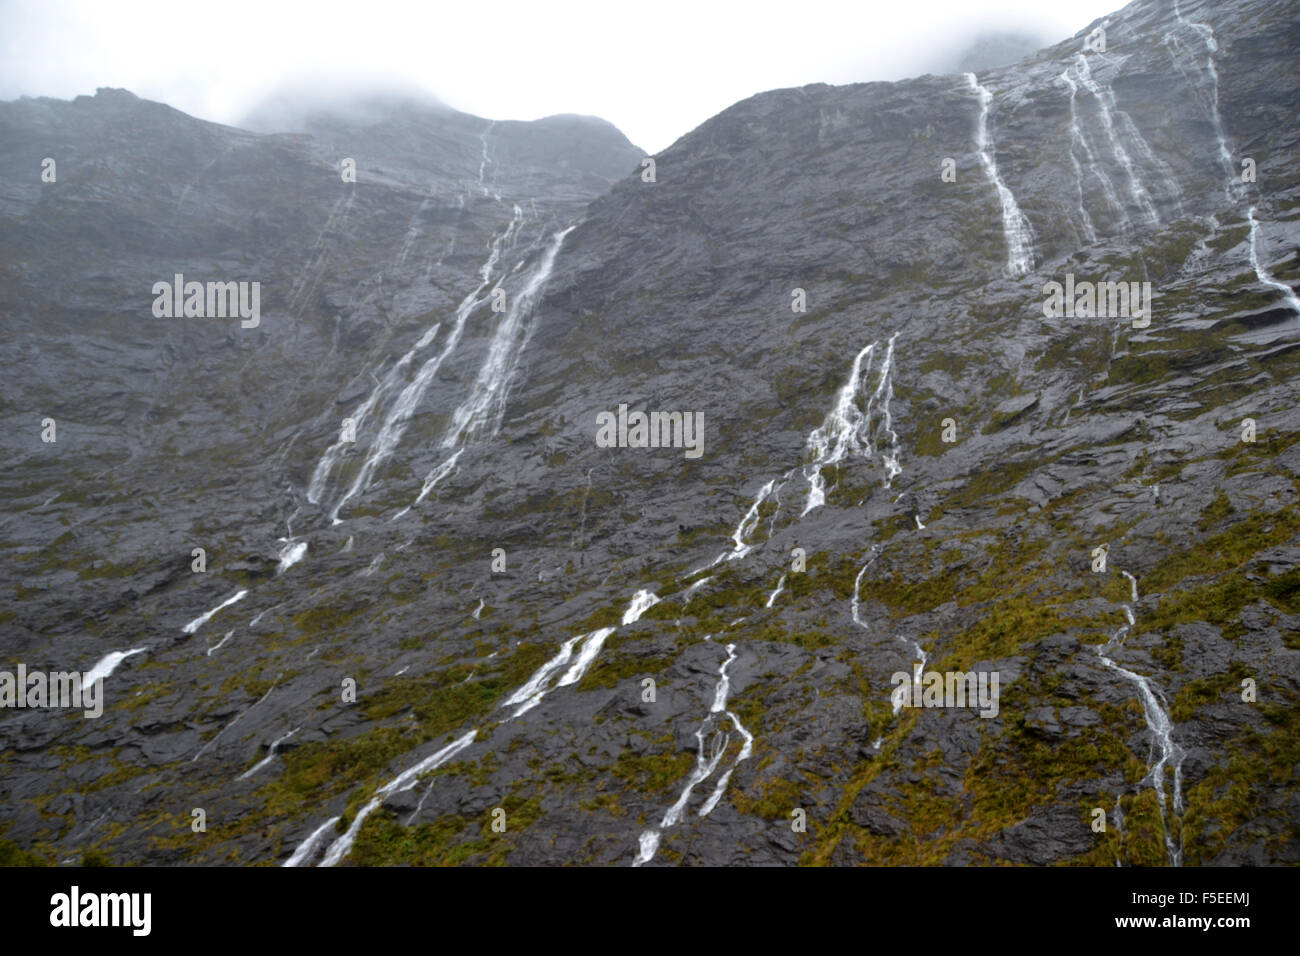 Glacier waterfalls on the road to Milford Sound, Fiordland National Park, South Island, New Zealand - Stock Image